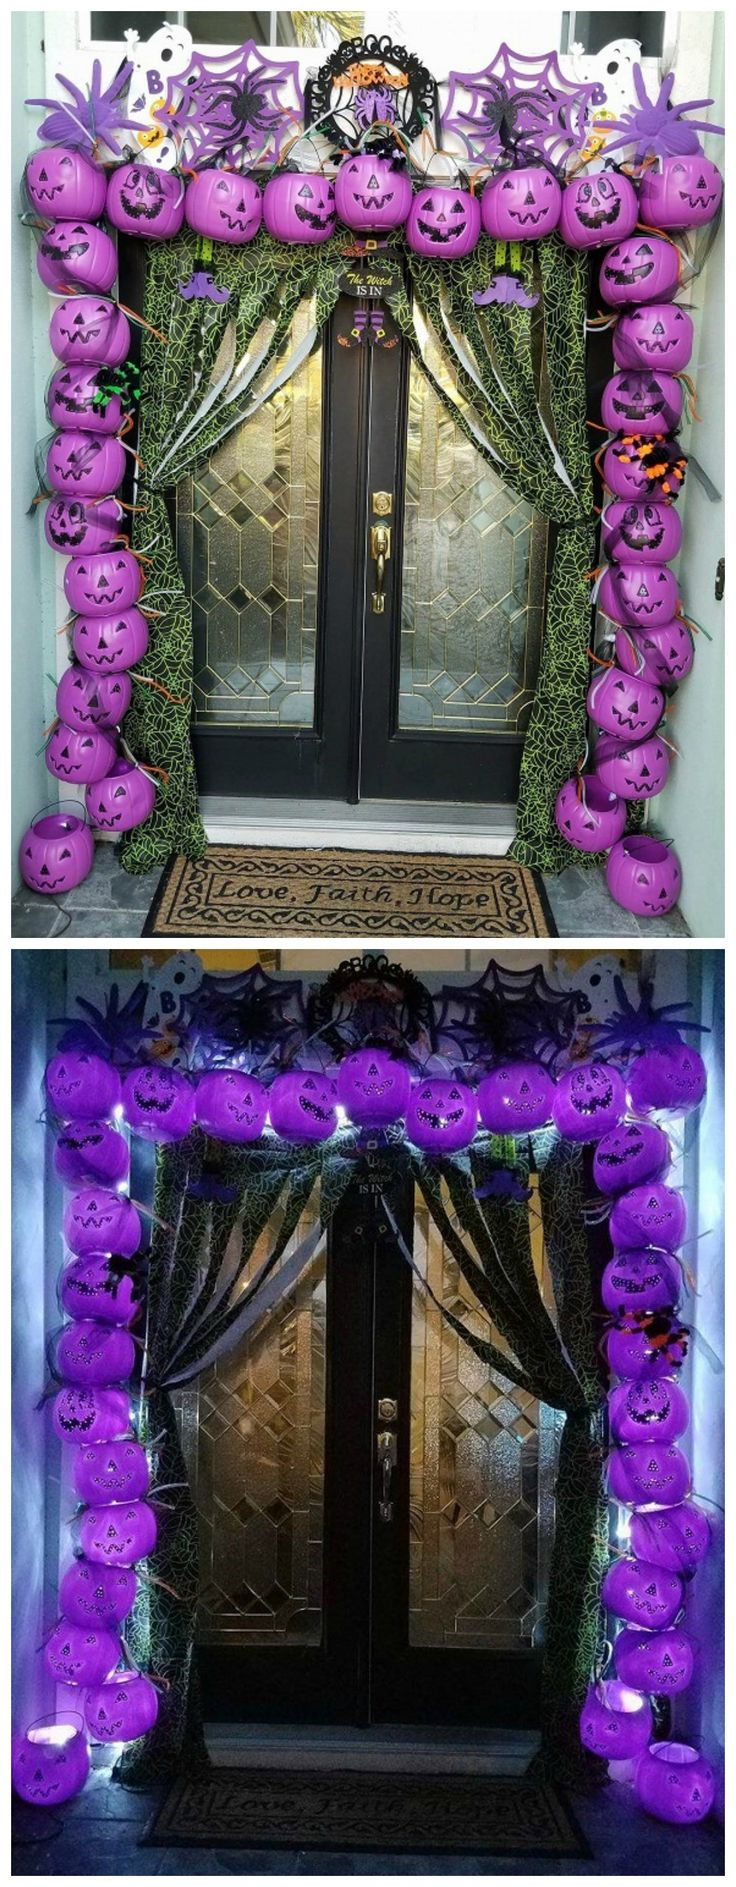 Plastic pumpkin entry way for Halloween...such an awesome lighted decoration!